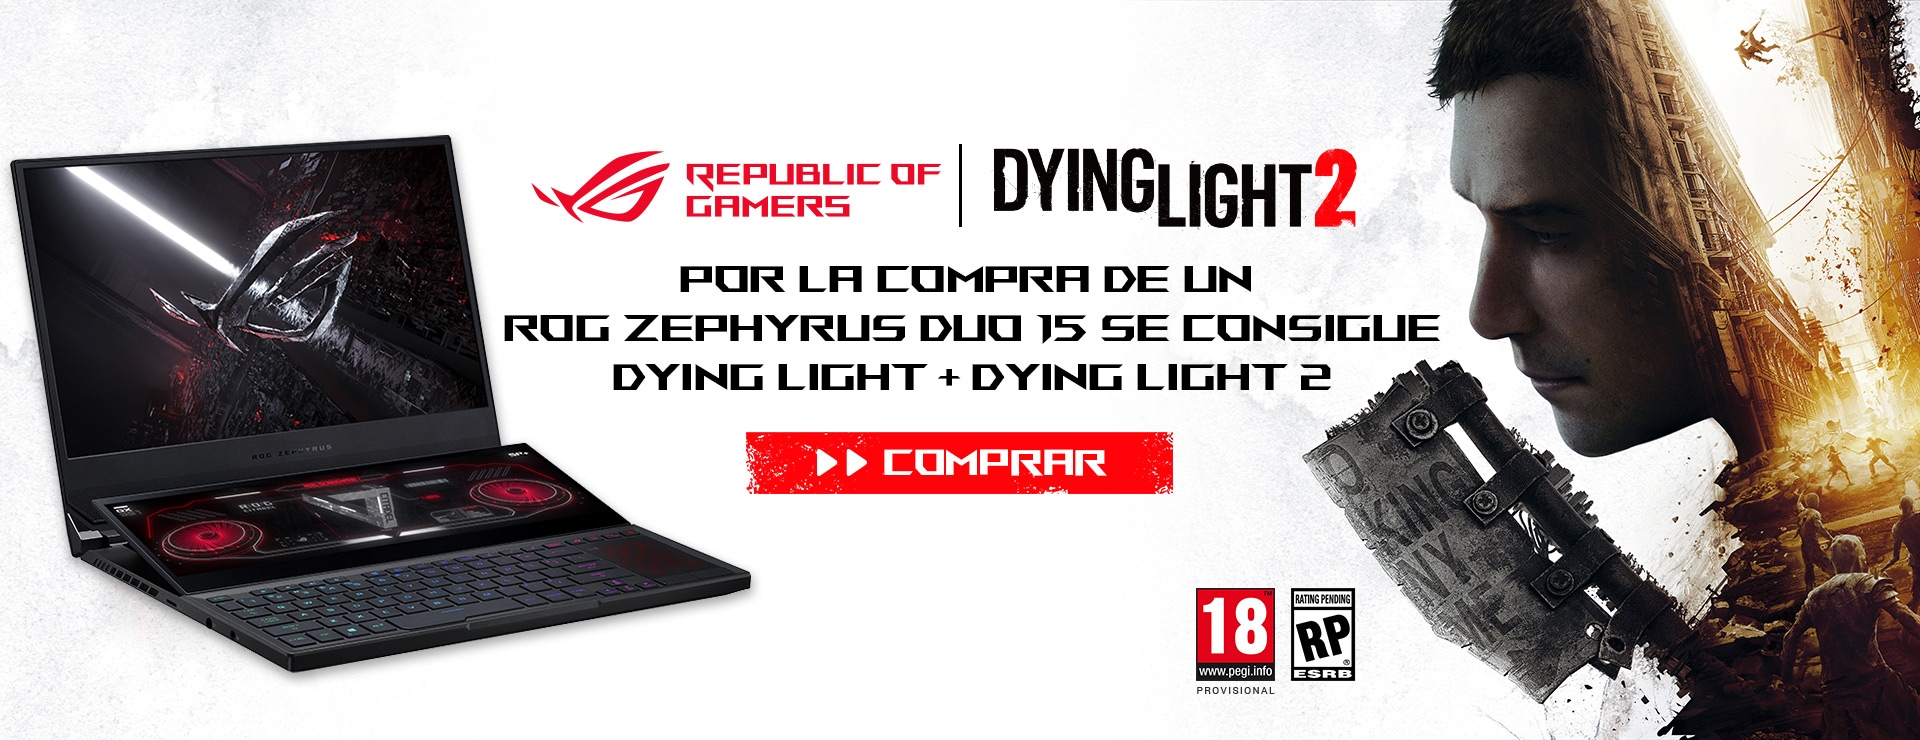 ROG Zephyrus Duo 15 SE + Dying Light